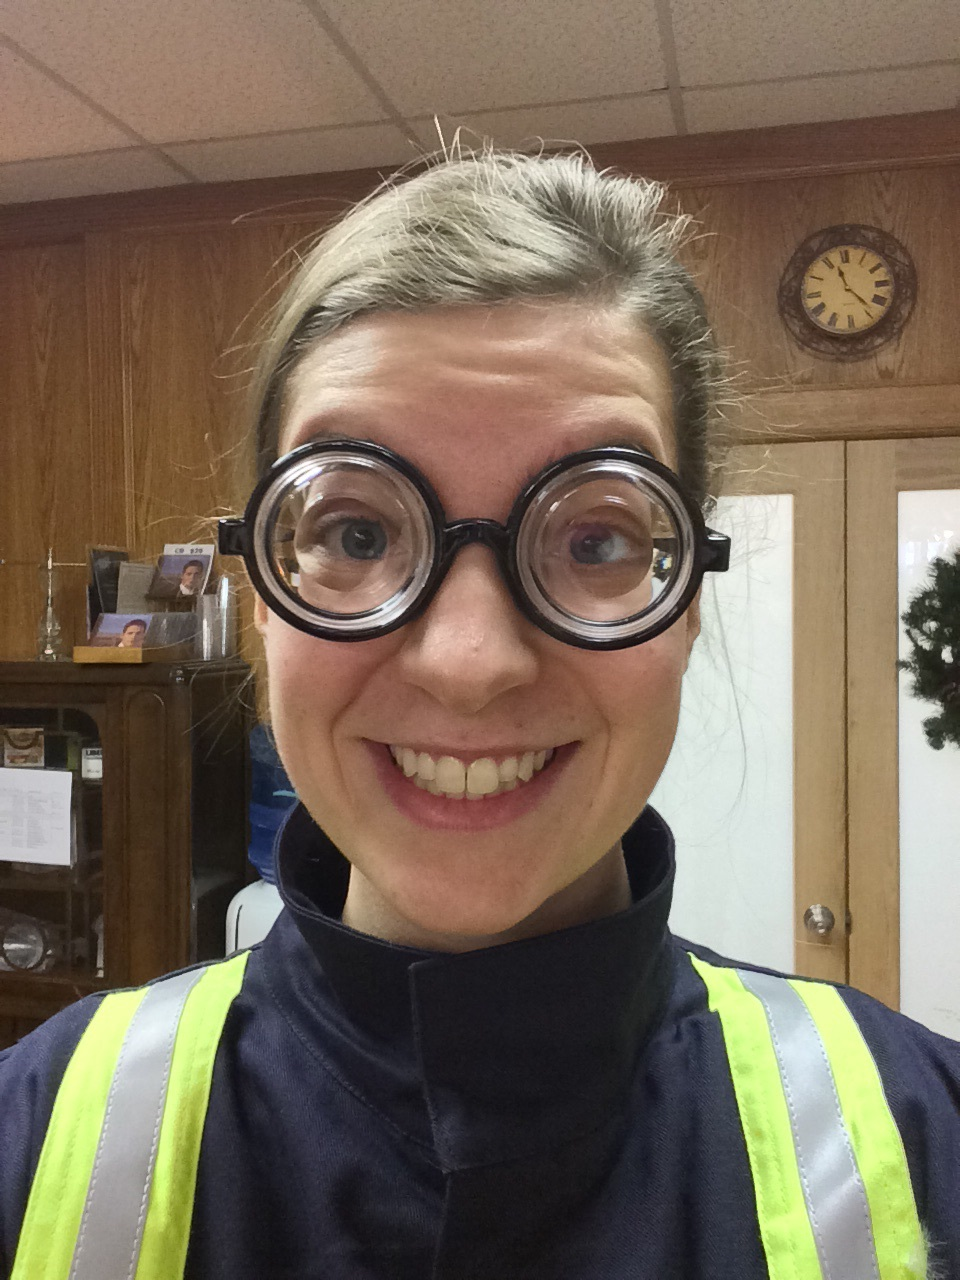 Another fun costume! The glasses mean you have to look straight ahead to avoid getting dizzy.